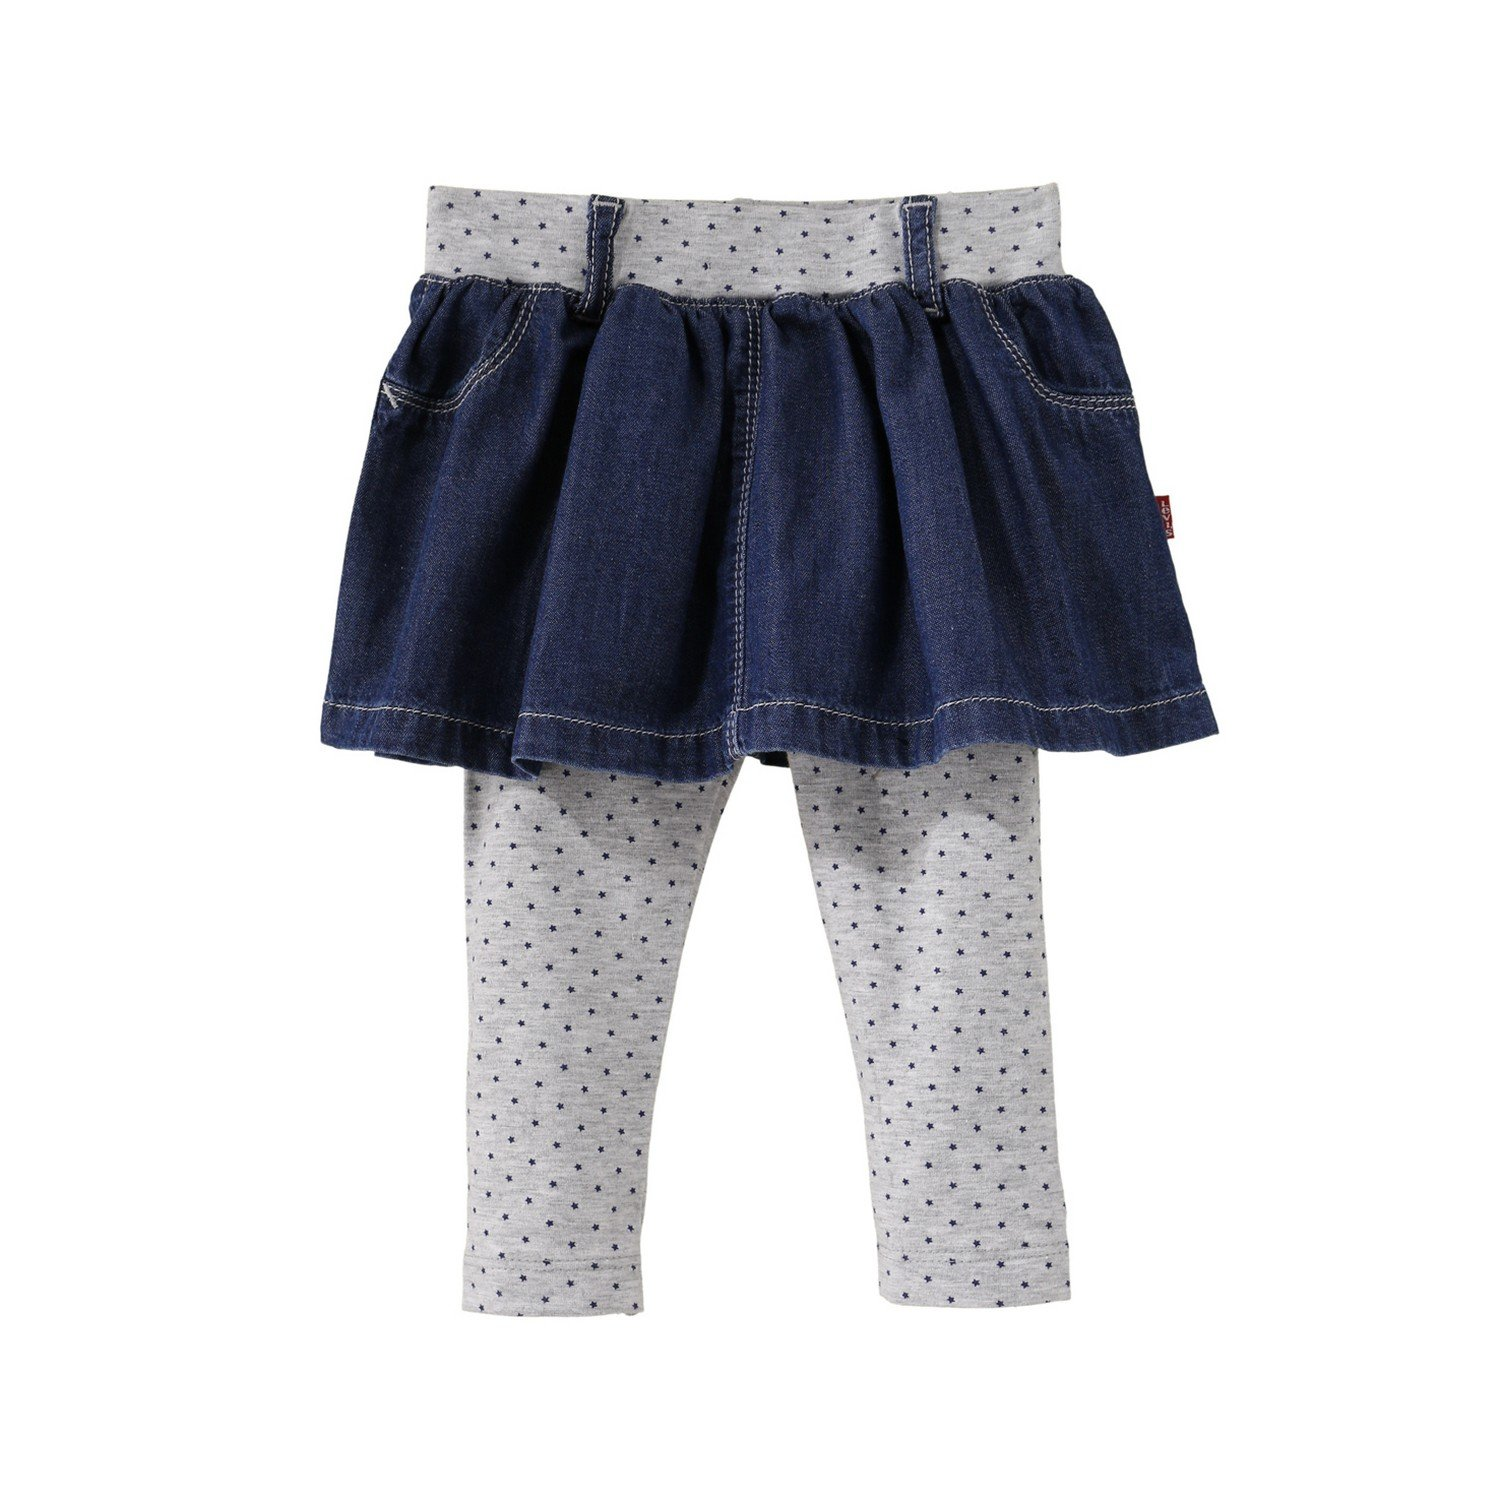 Levi's Kids Skirt July, Jupe Bébé Fille Levi' s Kids Skirt July Bleu (Denim) NK27504